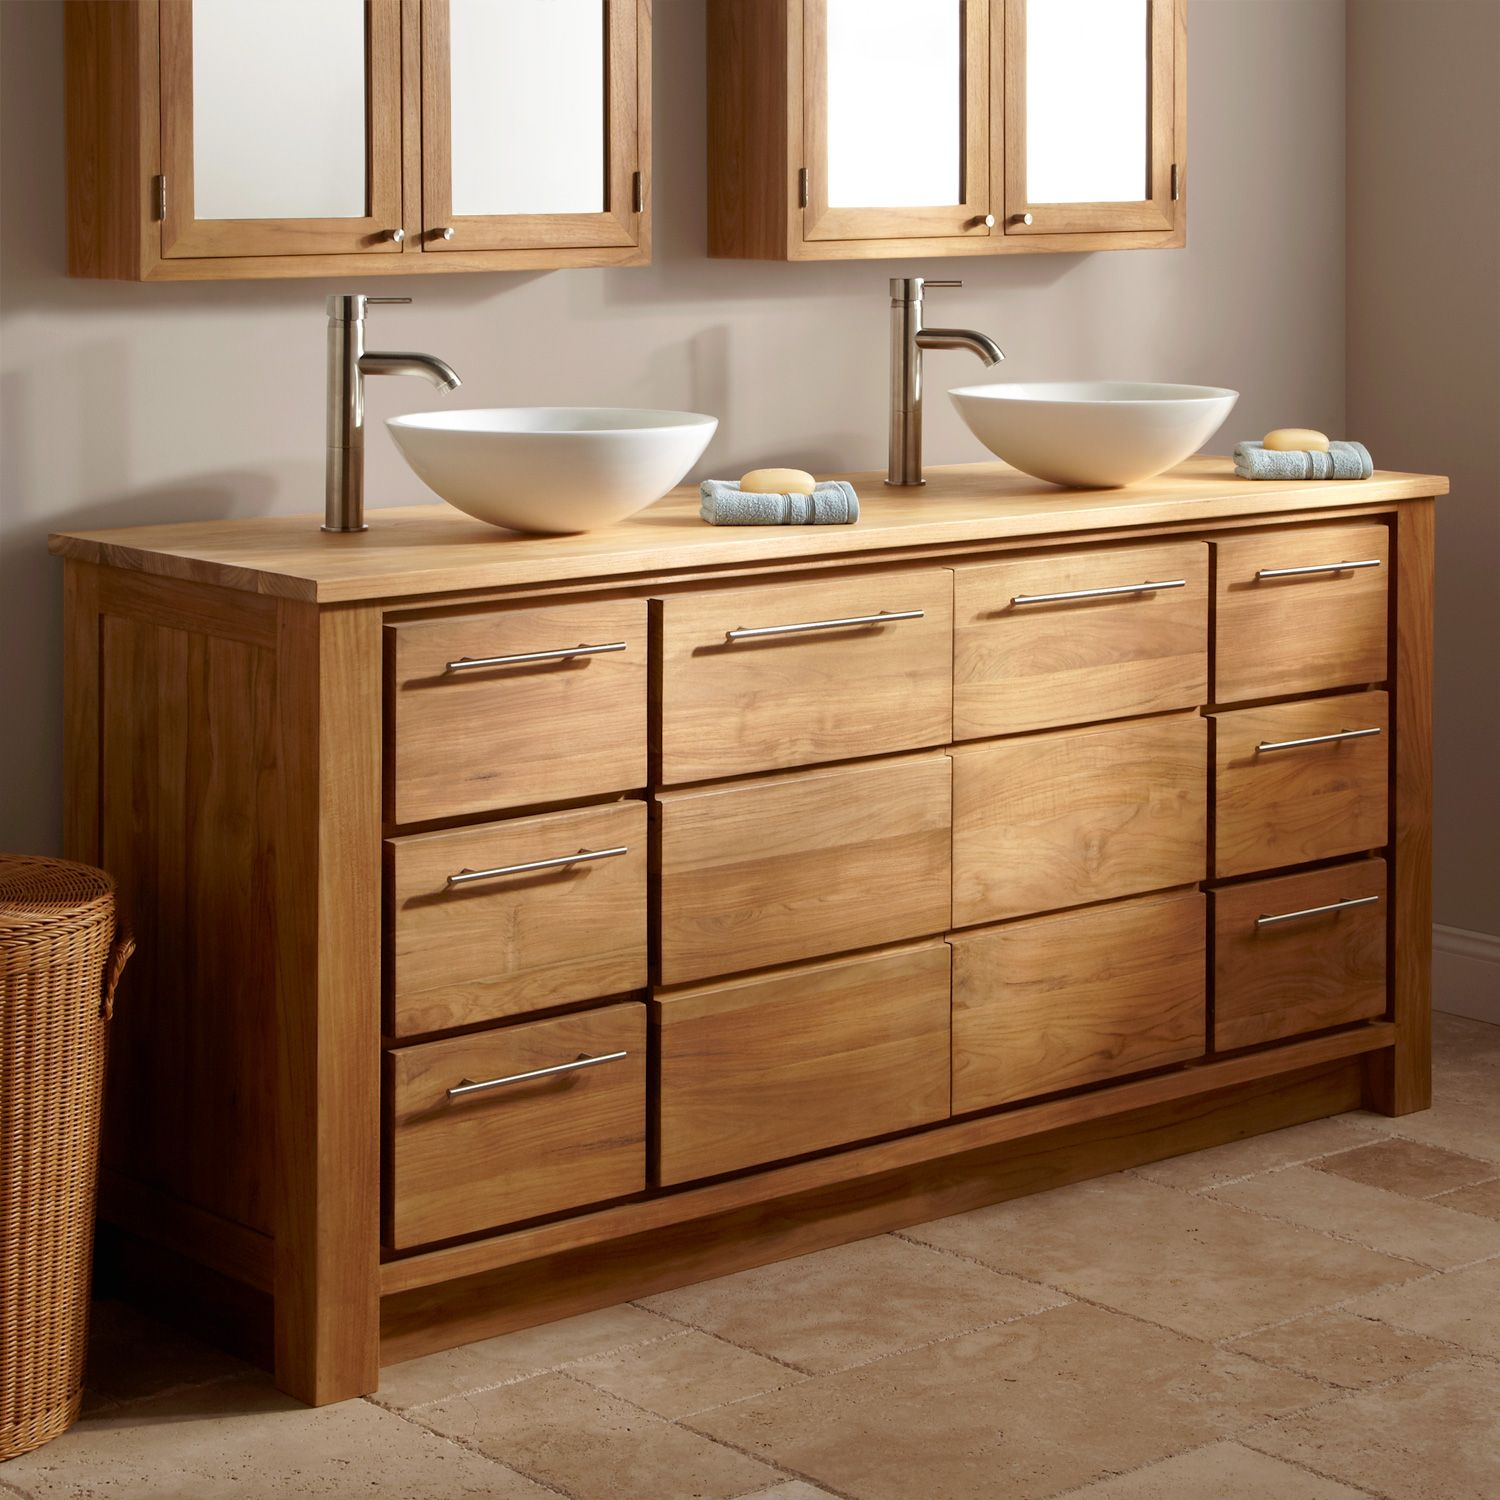 Polyurethane bathroom vanity unit with ceramic basin on metal legs - Venica Teak Double Vessel Sink Vanity With Teak Top Bathroom Vanities Bathroom